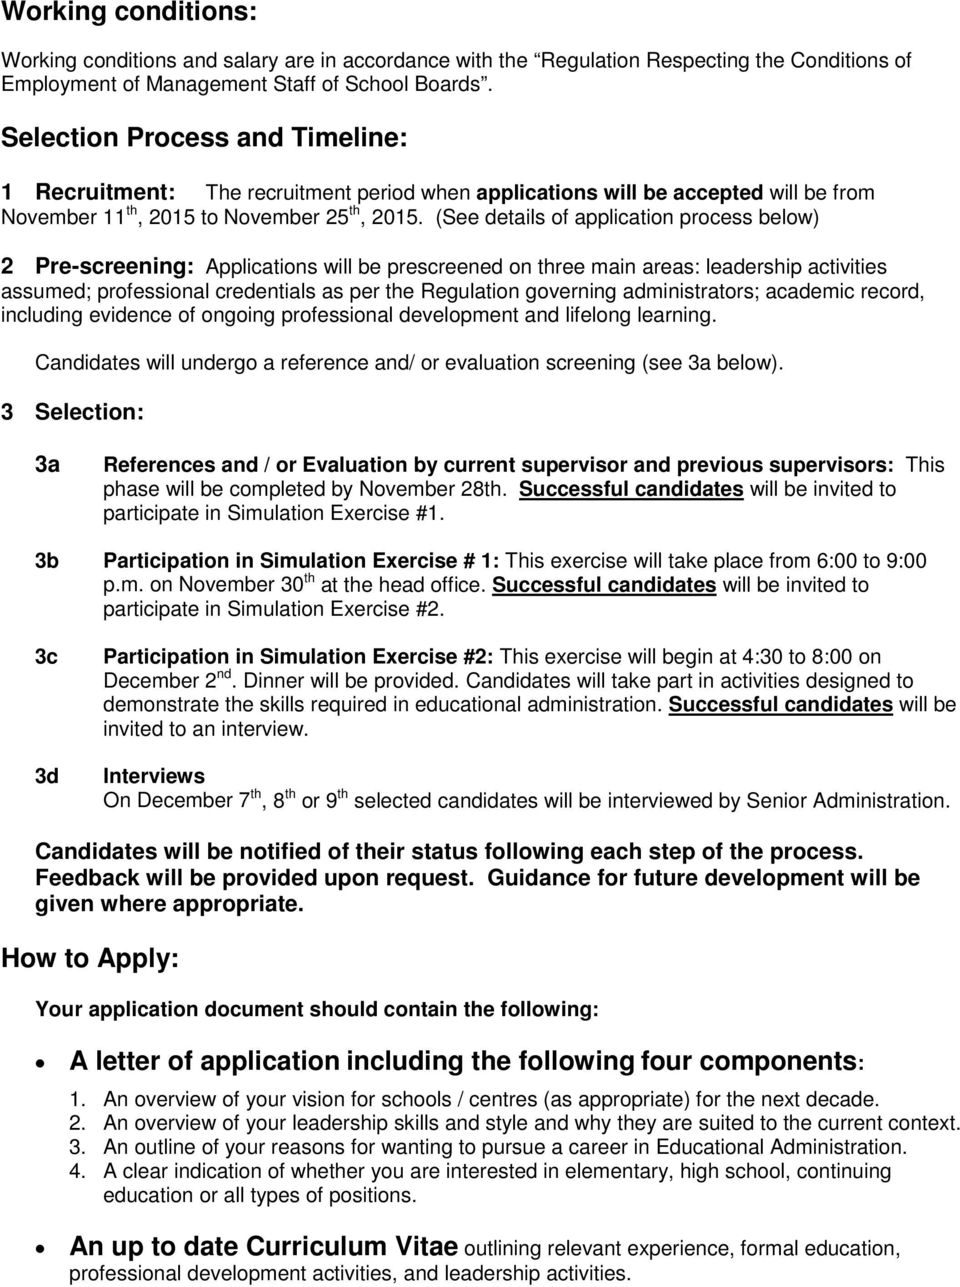 (See details of application process below) 2 Pre-screening: Applications will be prescreened on three main areas: leadership activities assumed; professional credentials as per the Regulation